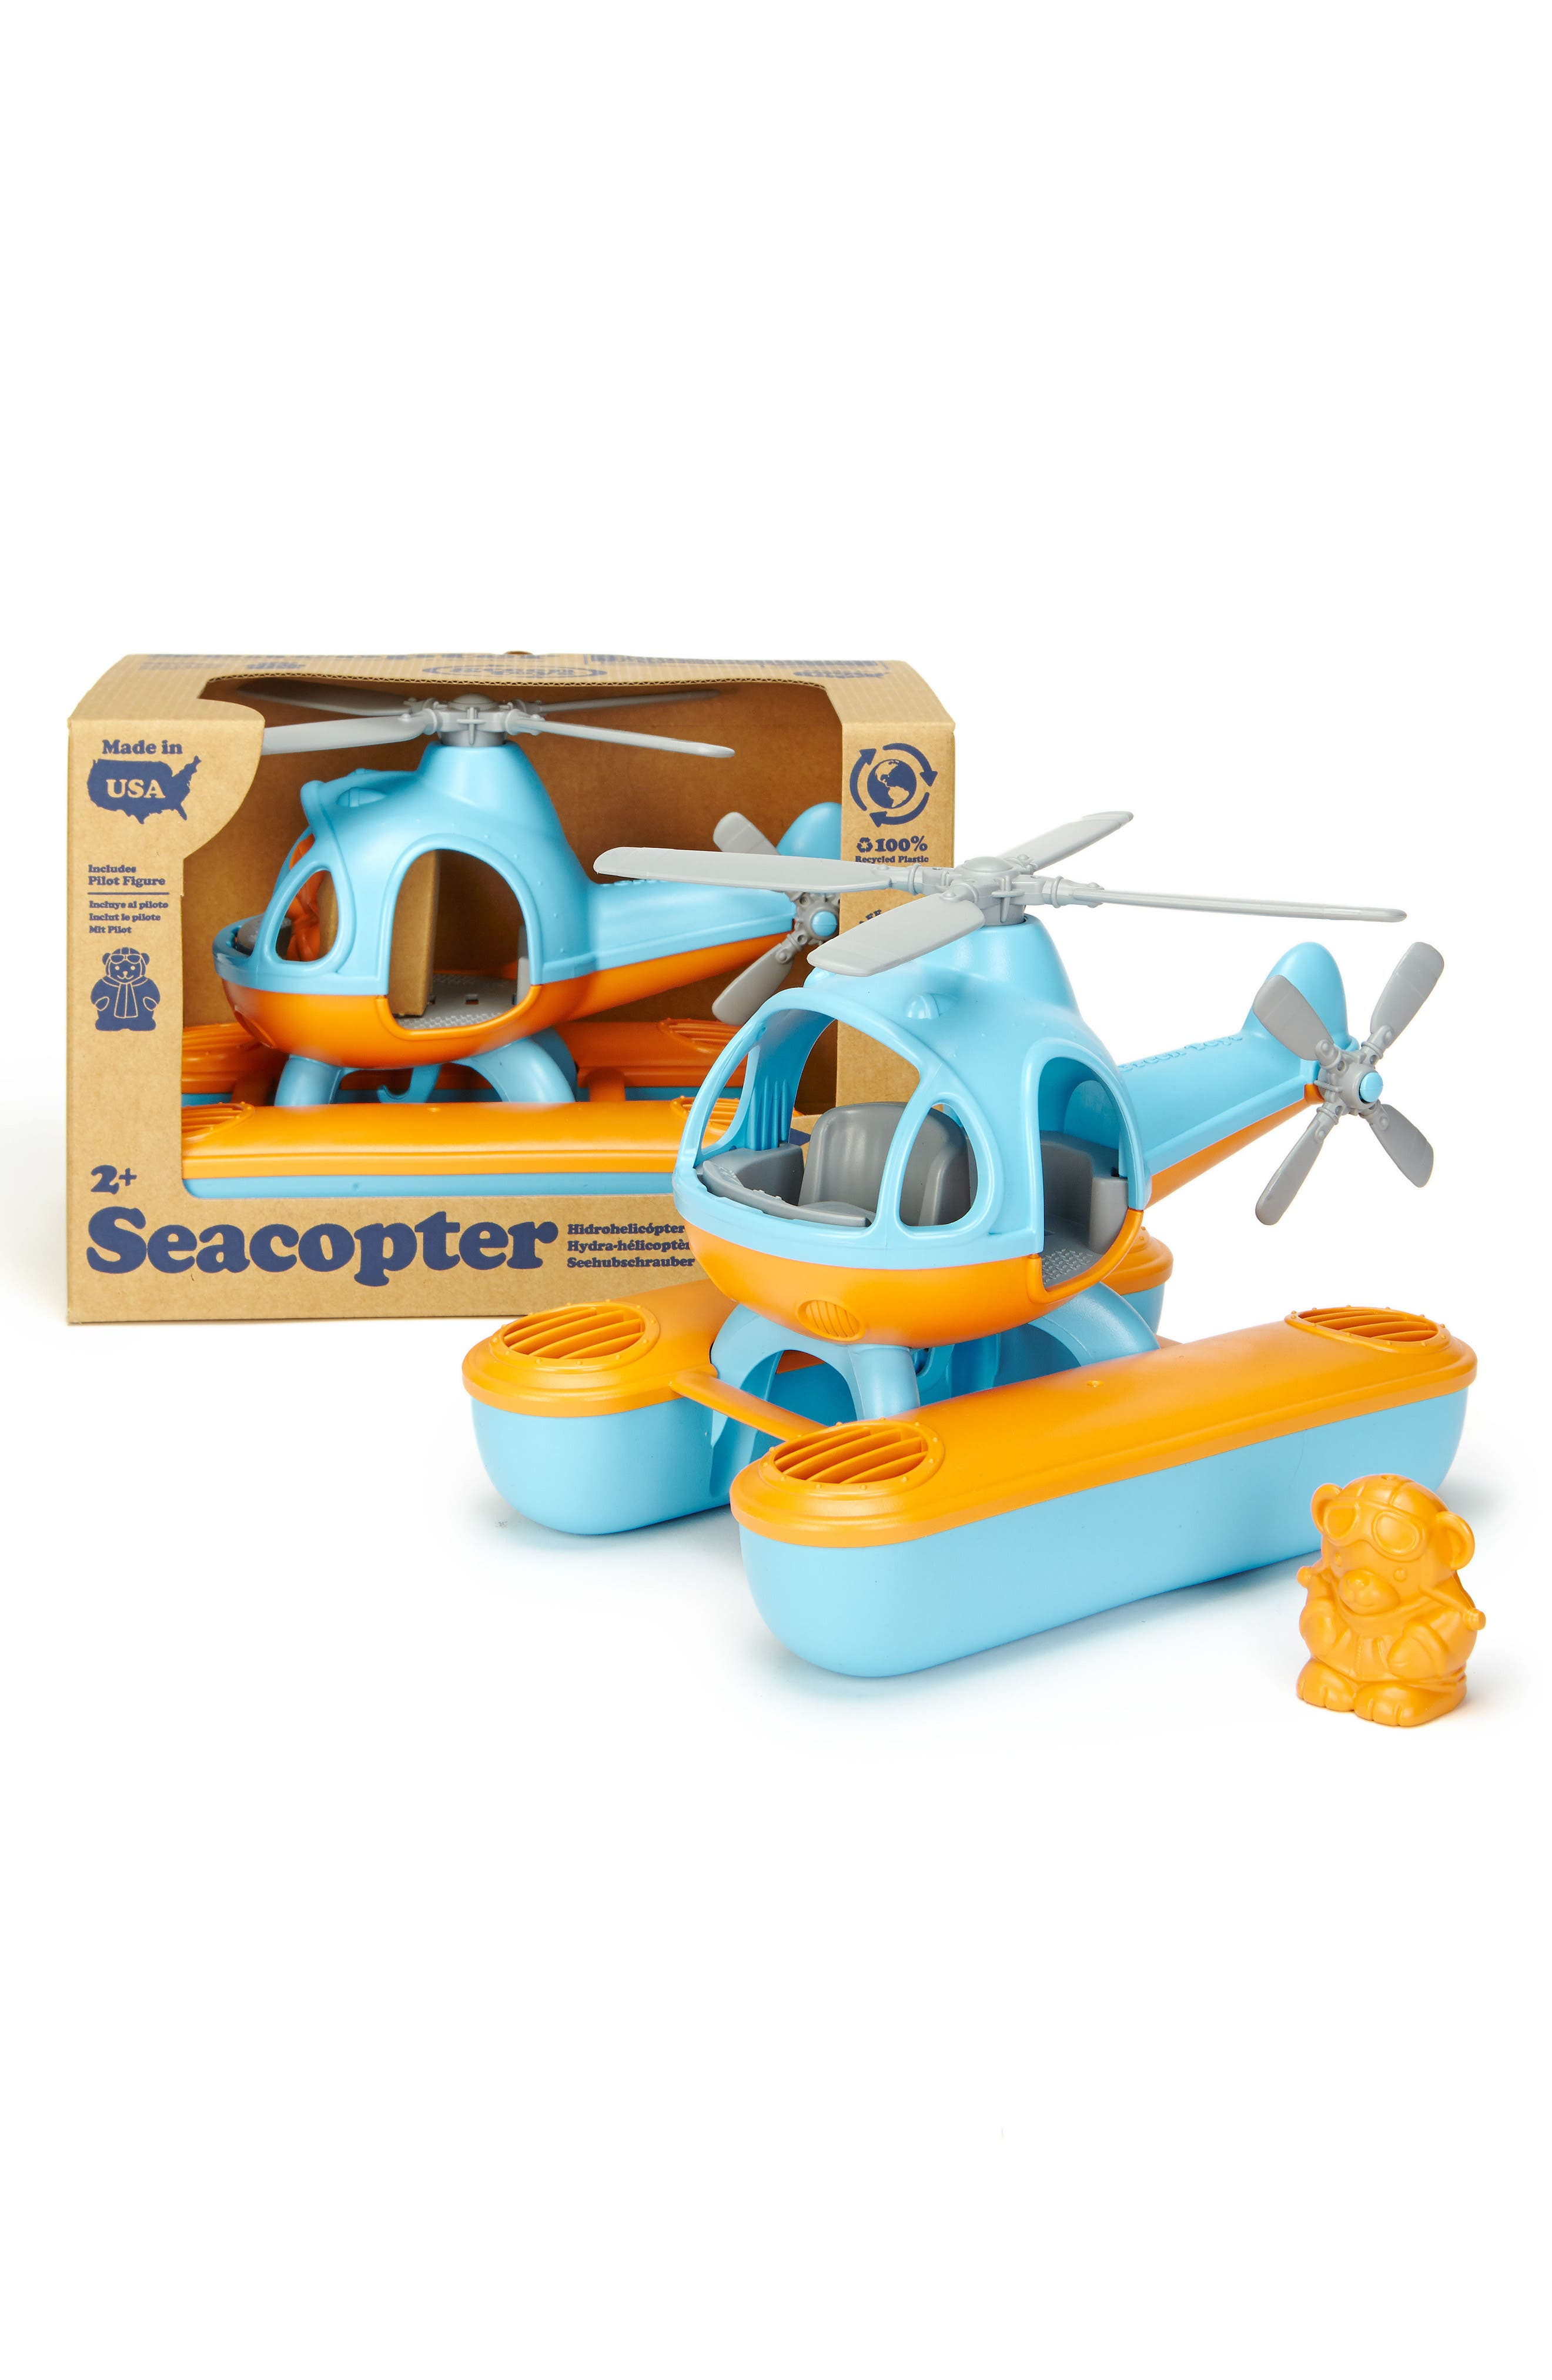 Two-Piece Seacopter Toy,                             Alternate thumbnail 3, color,                             400